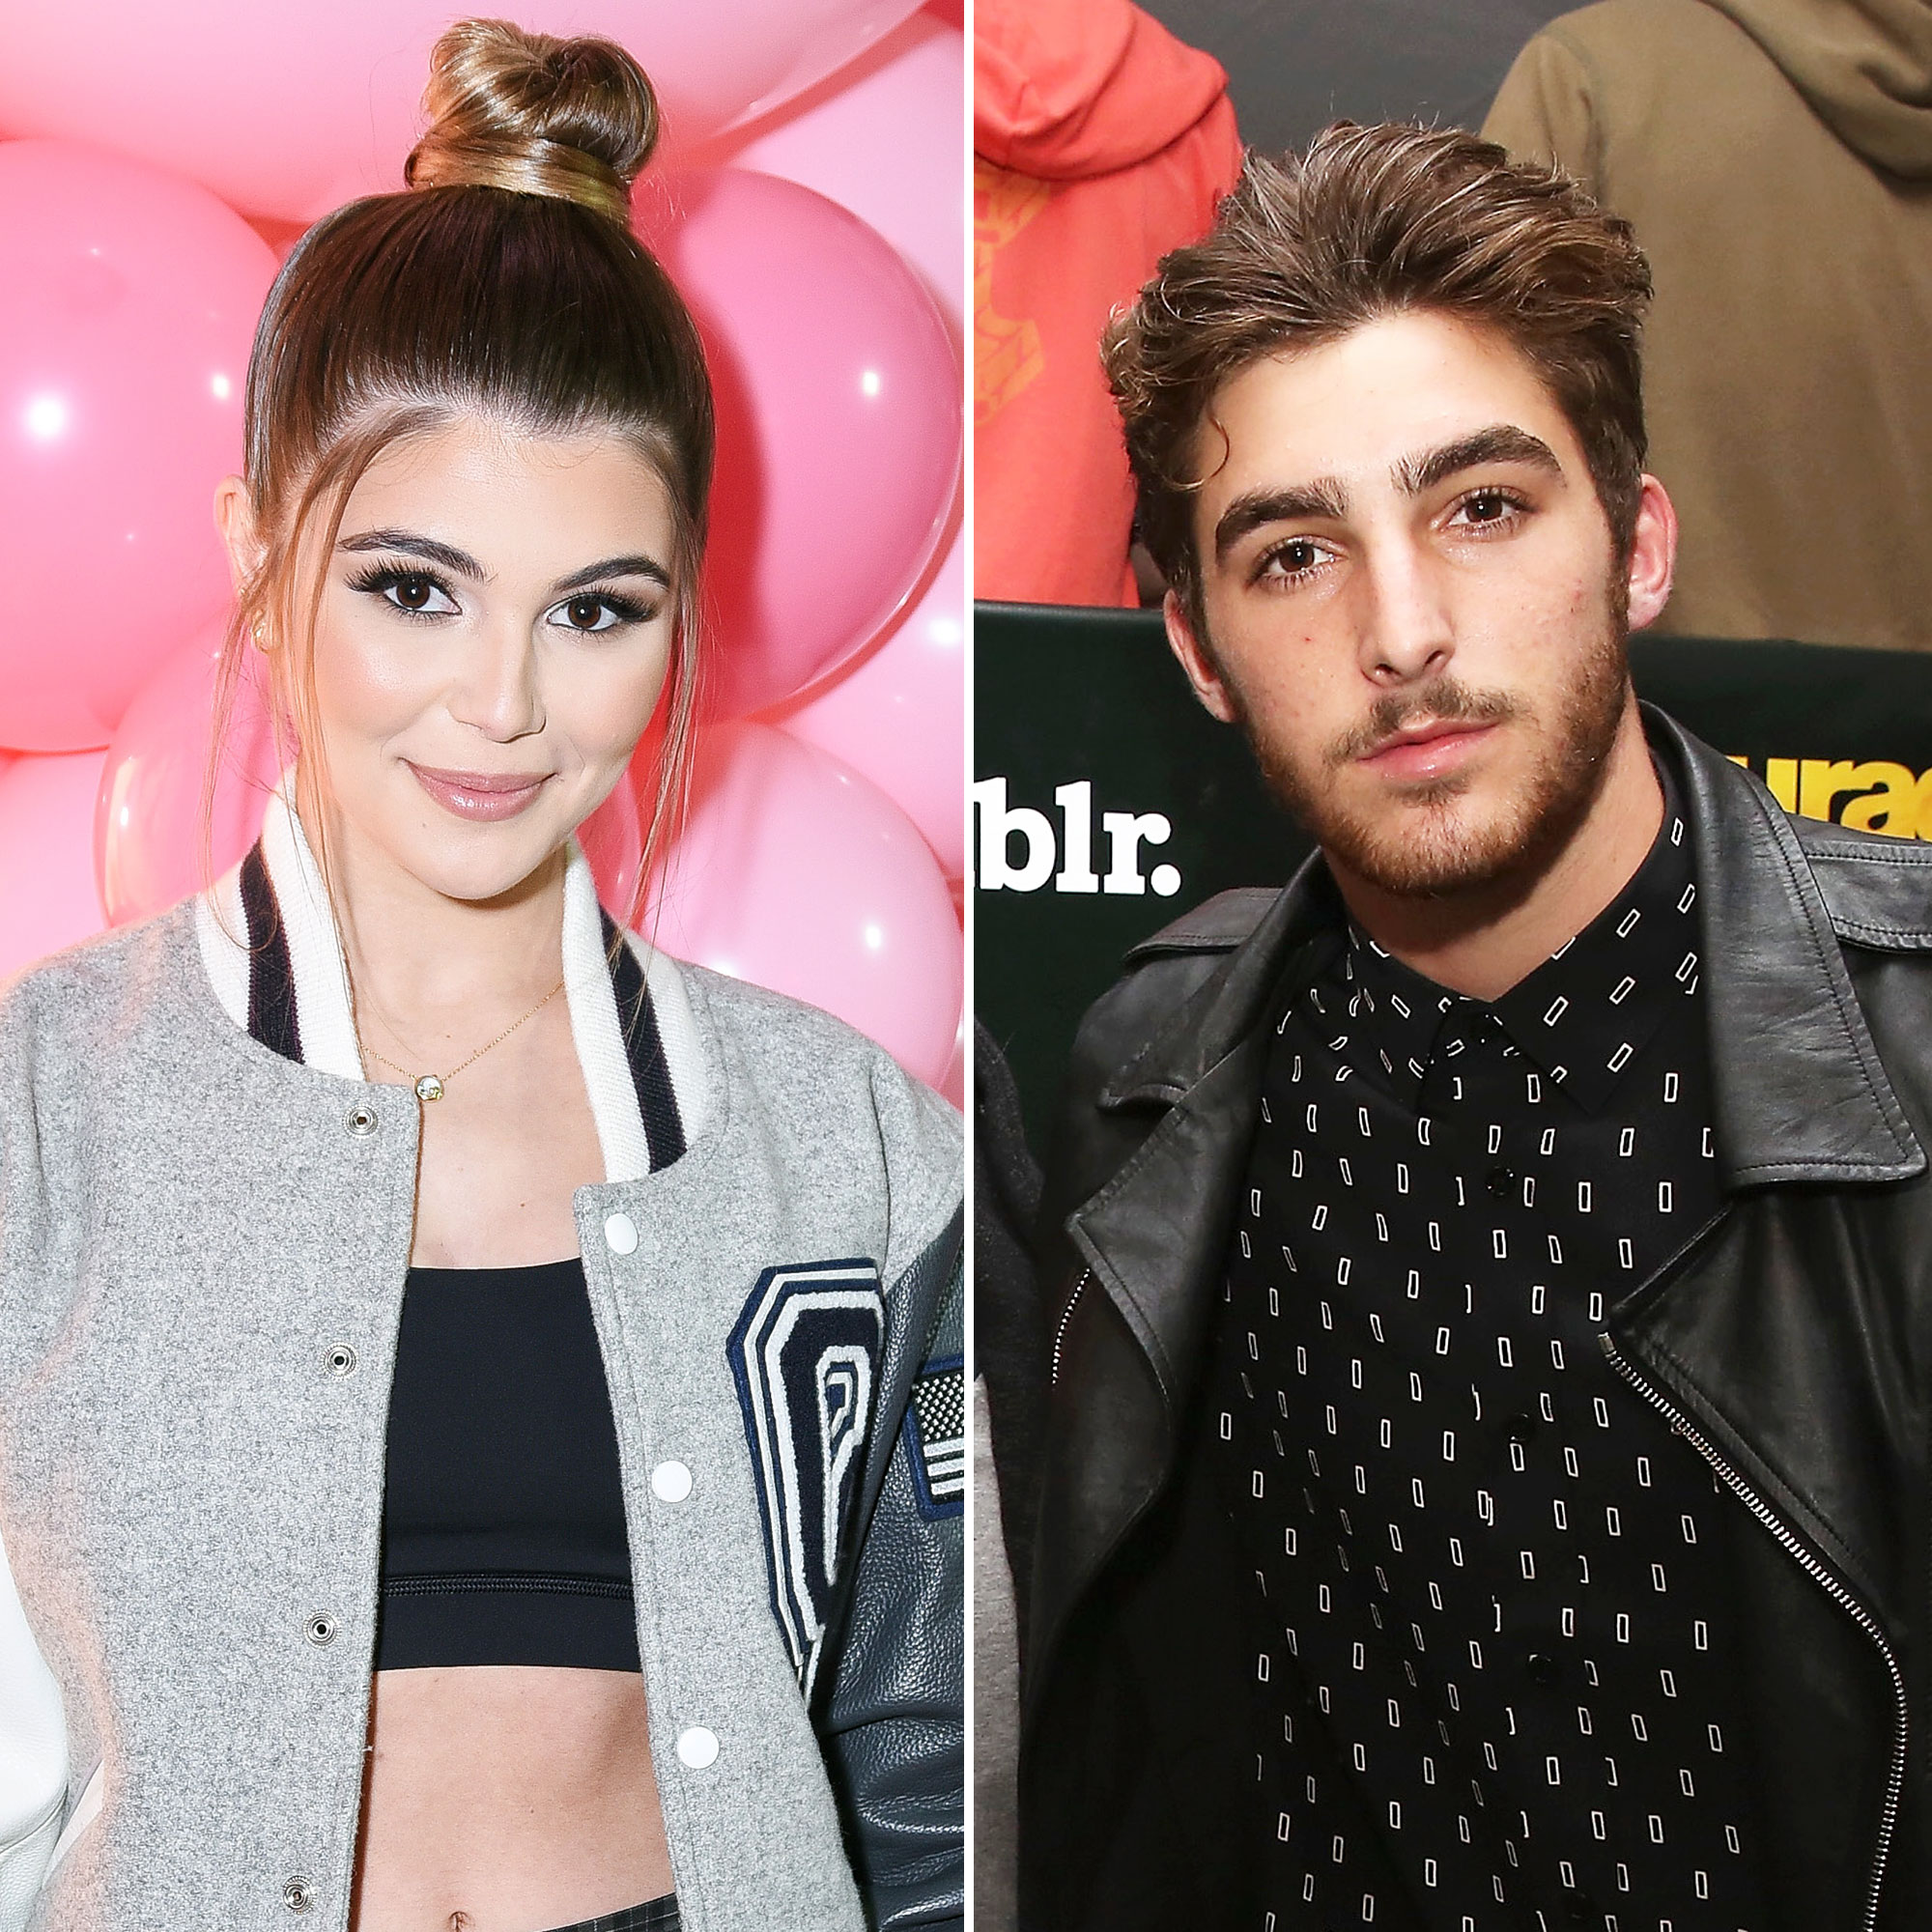 Olivia Jade Giannulli and Jackson Guthy Spotted Together